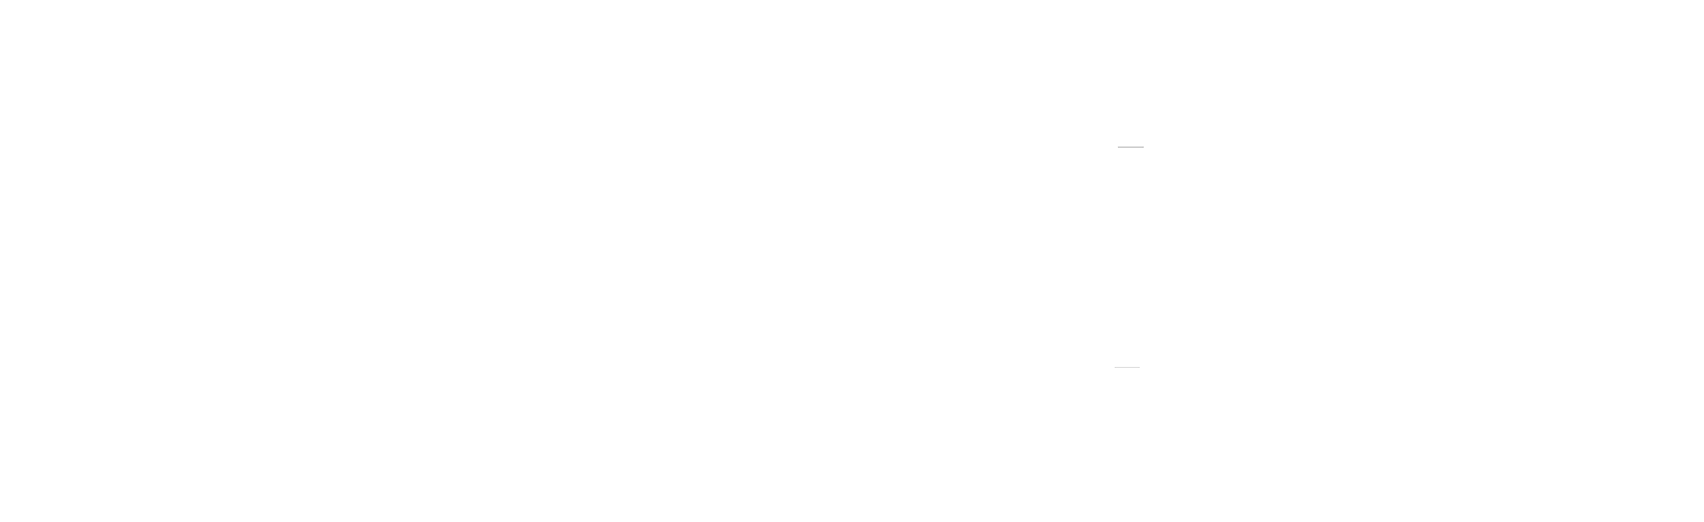 NEW hvkids Logo.png